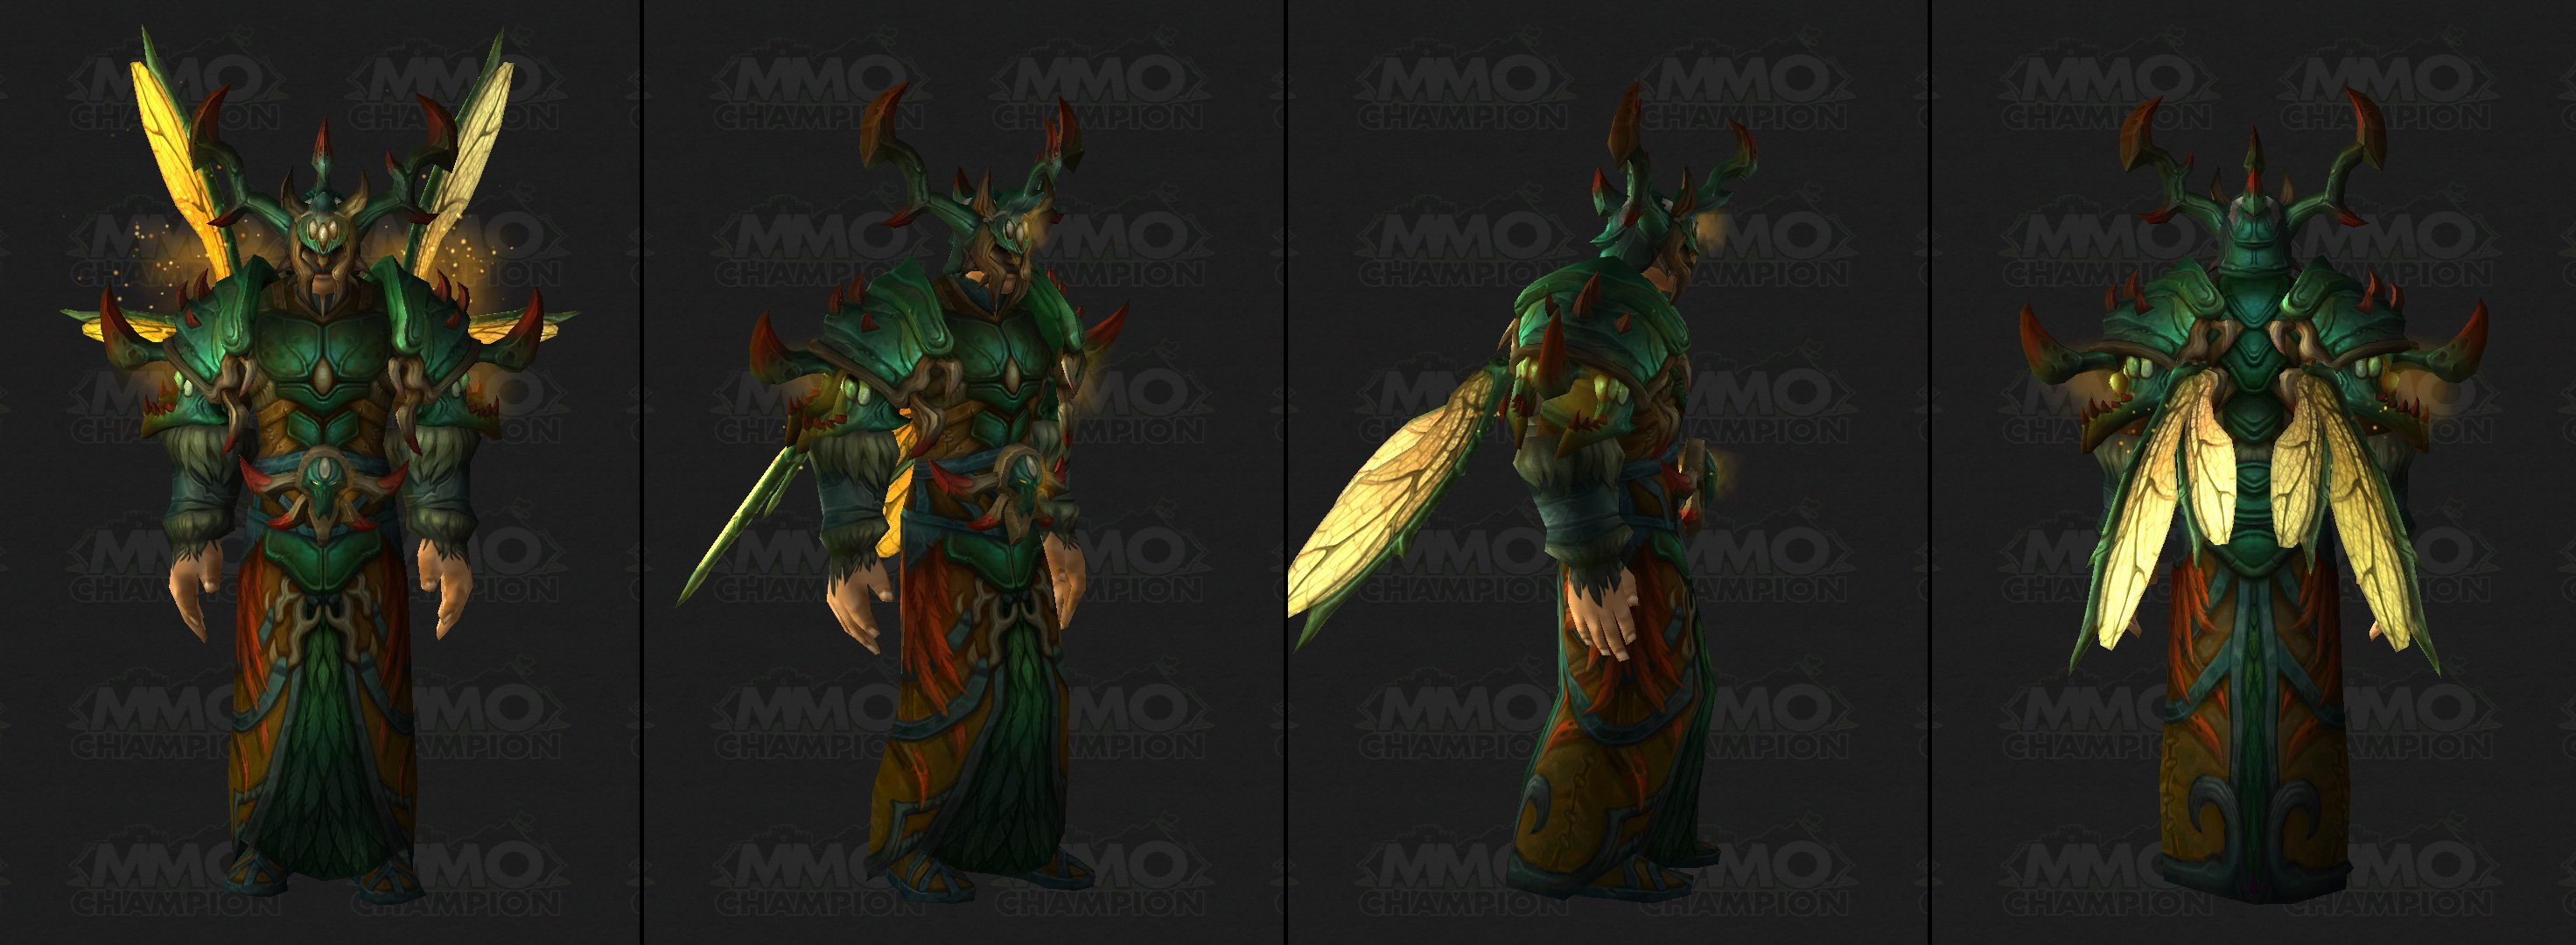 wow druid mythic tier 17 armor set immosite get your. Black Bedroom Furniture Sets. Home Design Ideas